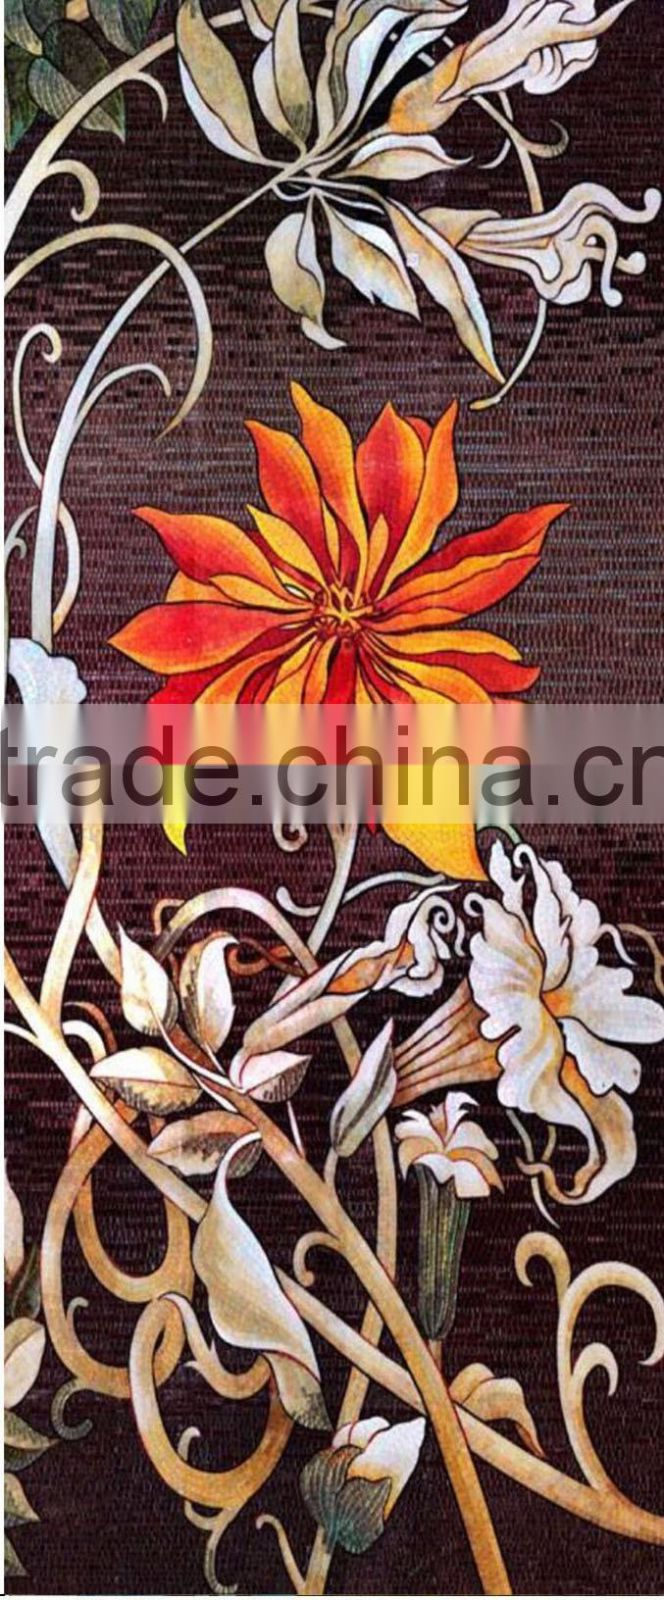 IMARK New Design Flower Pattern Mosaic Mural/Decorative Handmade mosaic Tile/Mosaic Art For Hotel/Cafe House Wall Decoration